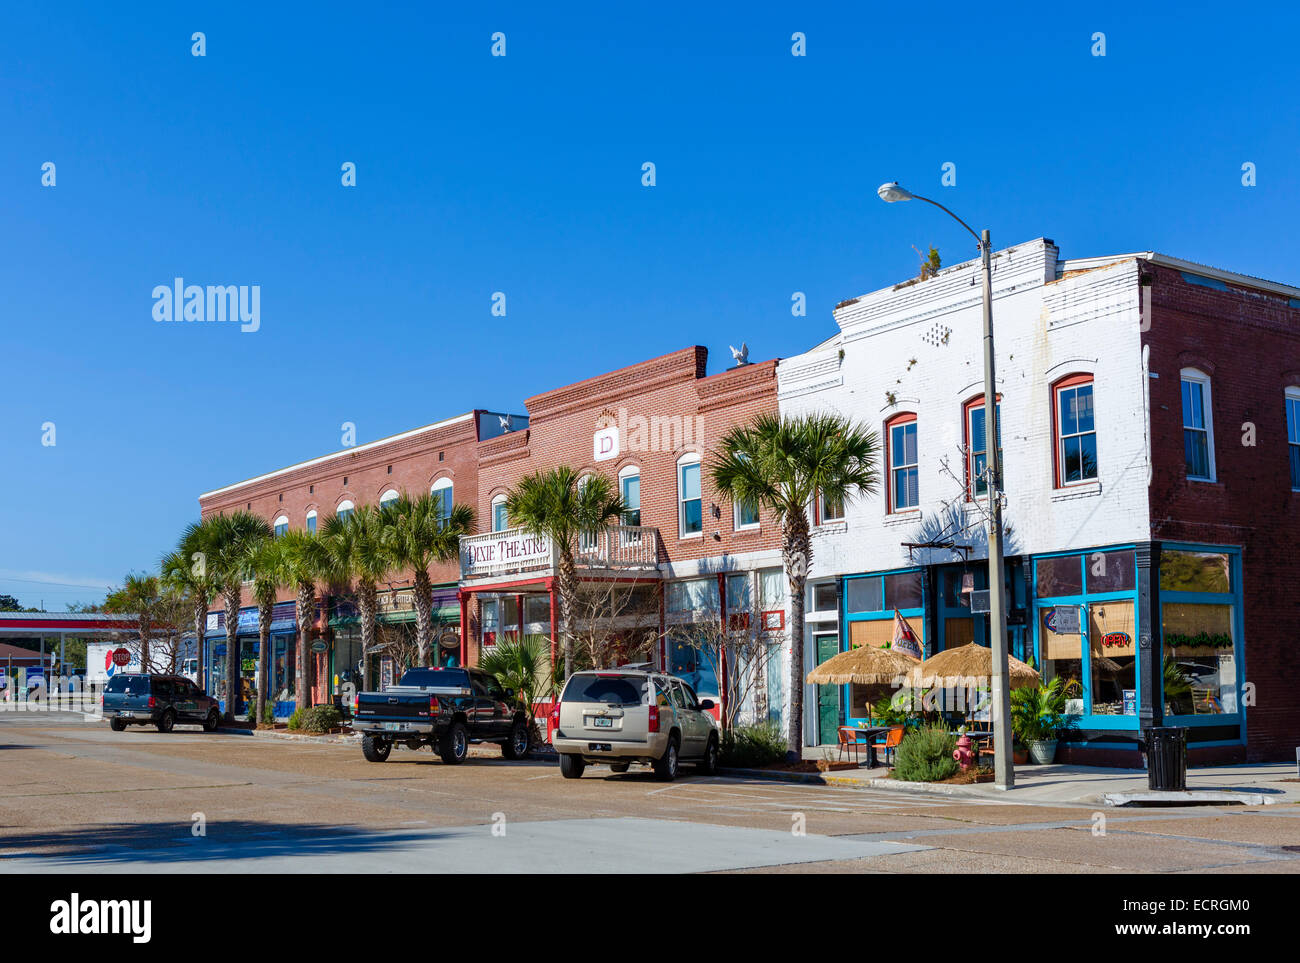 Avenue East in historic downtown Apalachicola, Franklin County, Florida, USA - Stock Image